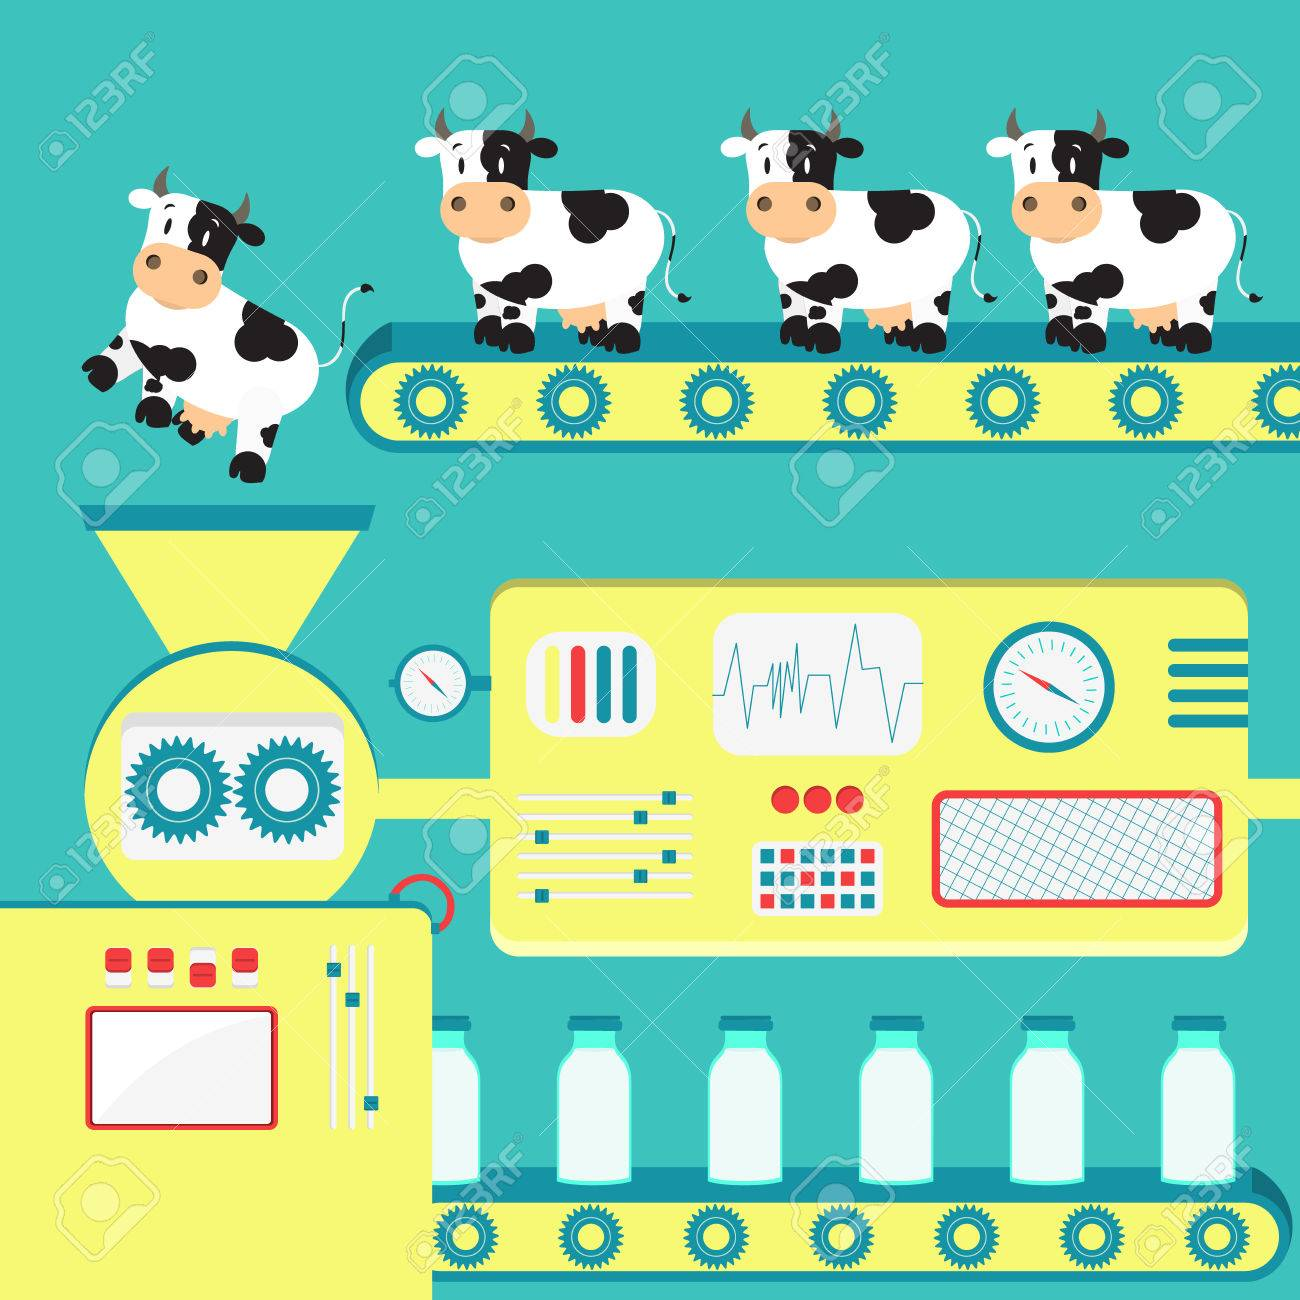 Production of cow's milk. Factory producing milk from the cow. Conceptual. - 53771106